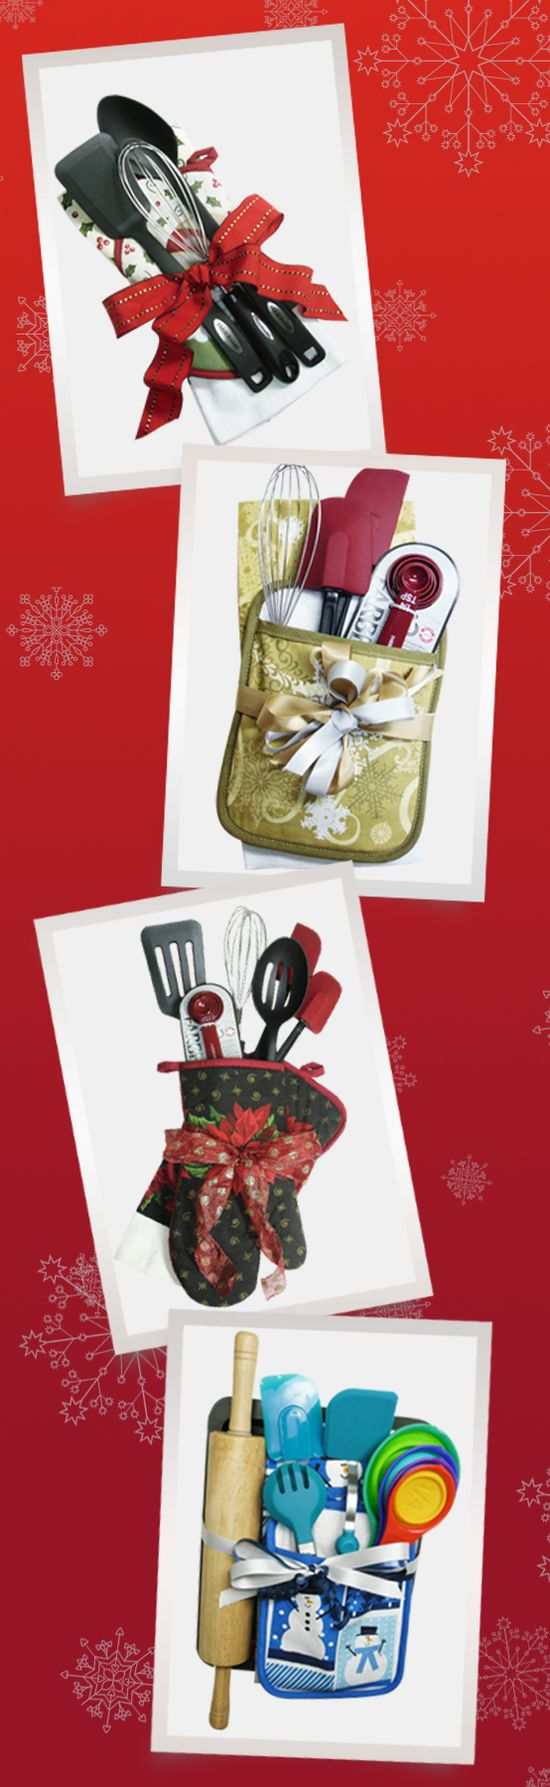 Perfect Do-it-Yourself holiday gift to make life in the kitchen a little more merry. Put together a collection of utensils with a kitchen towel, pot holder or oven mitt and tie it with a festive bow! Add a muffin tin, cookie sheet and rolling pin to mix things up for the baker in the family. Anna's has everything you need for great gift ideas like this and more! #AnnasLinens